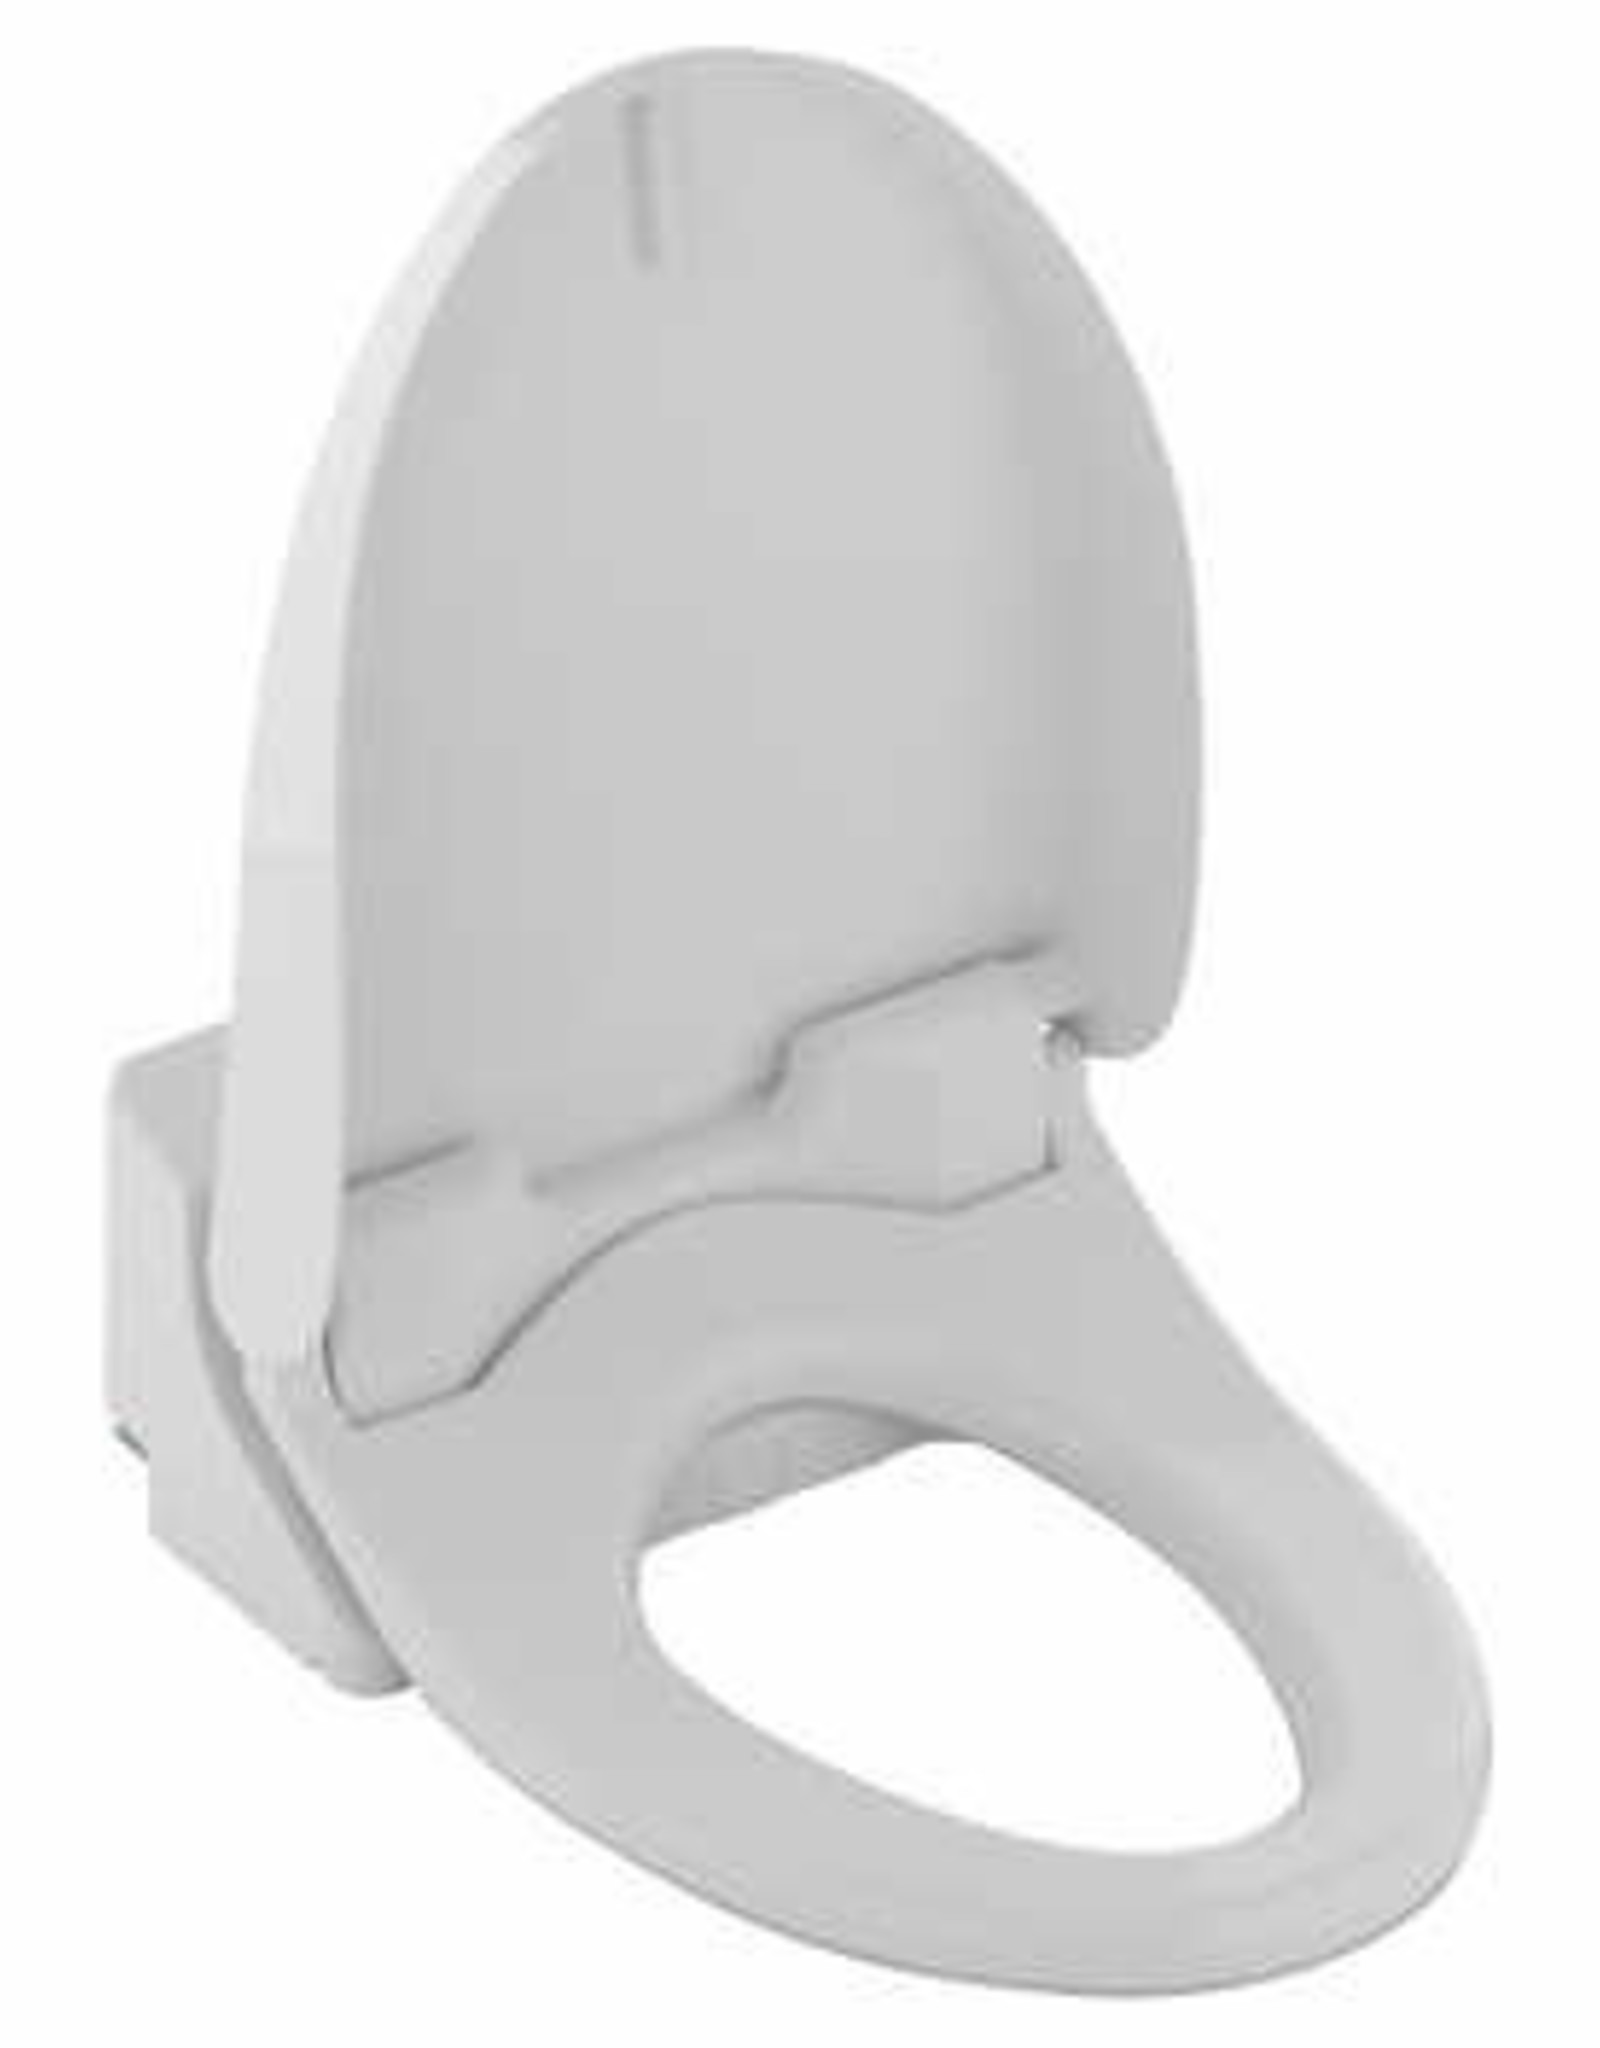 THE DISTRIBUTION TOTO WASHLET BIDET SEAT